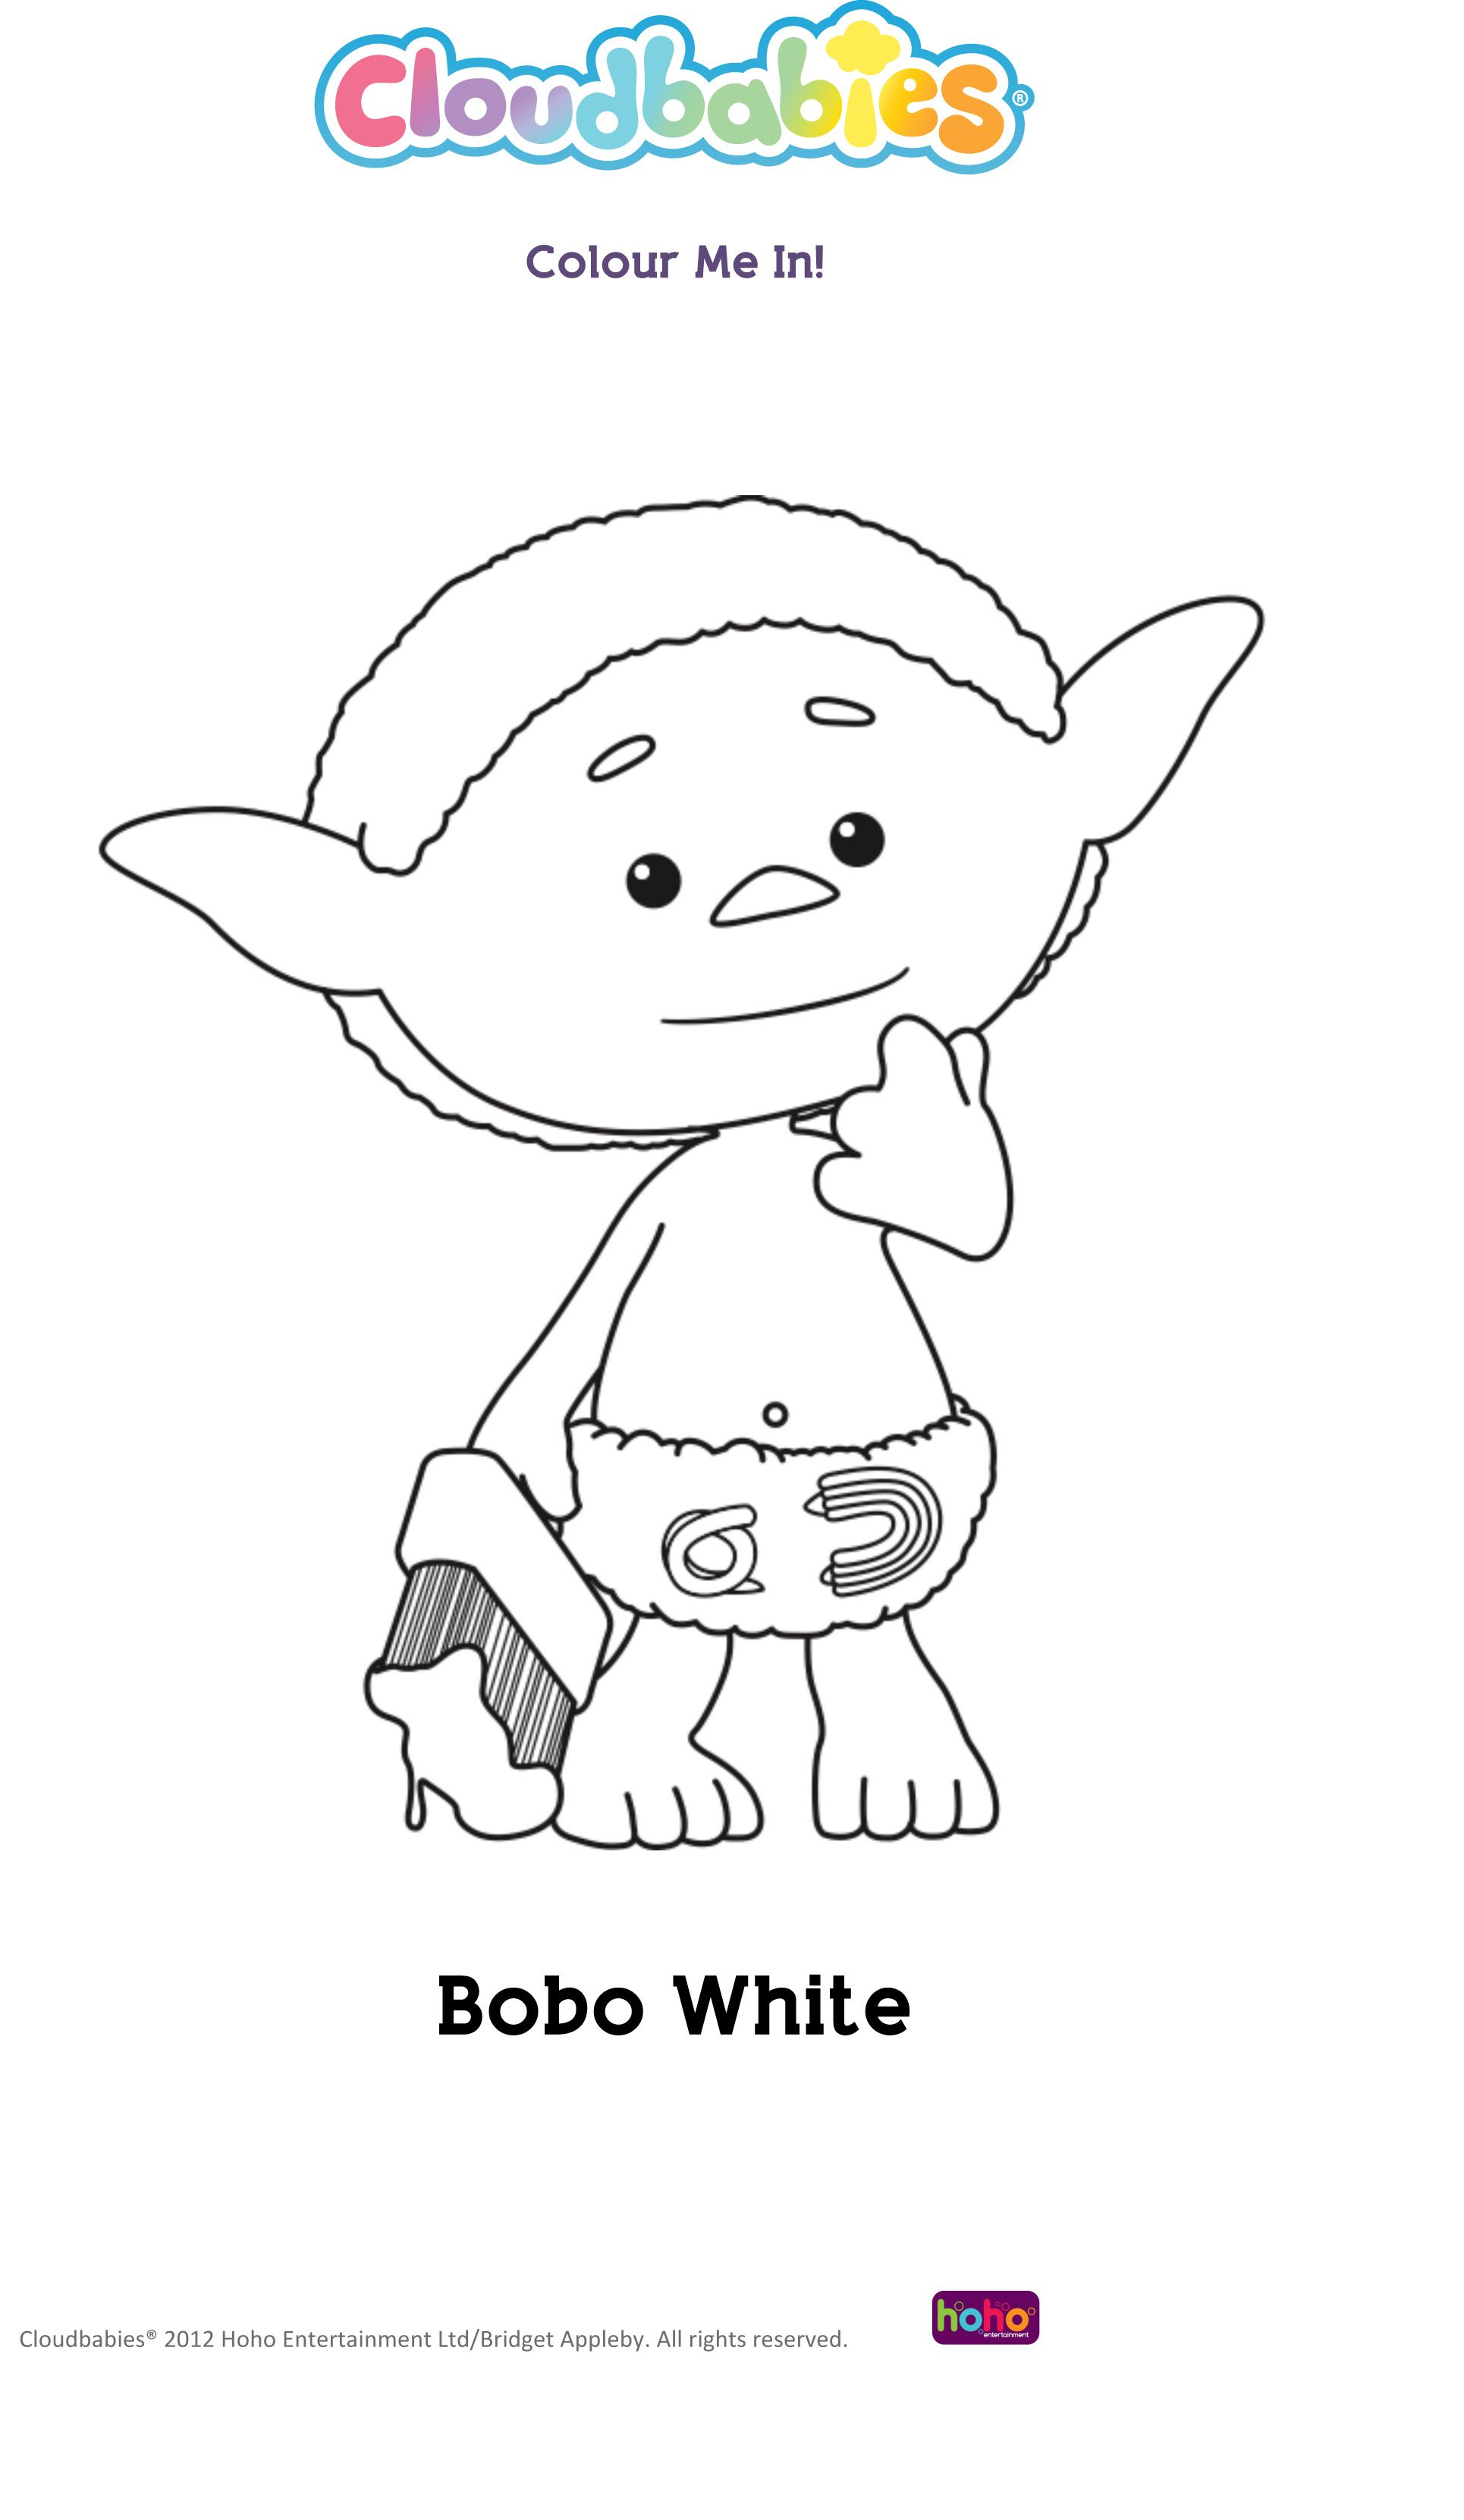 cloudbabies coloring pages for kids - photo#6